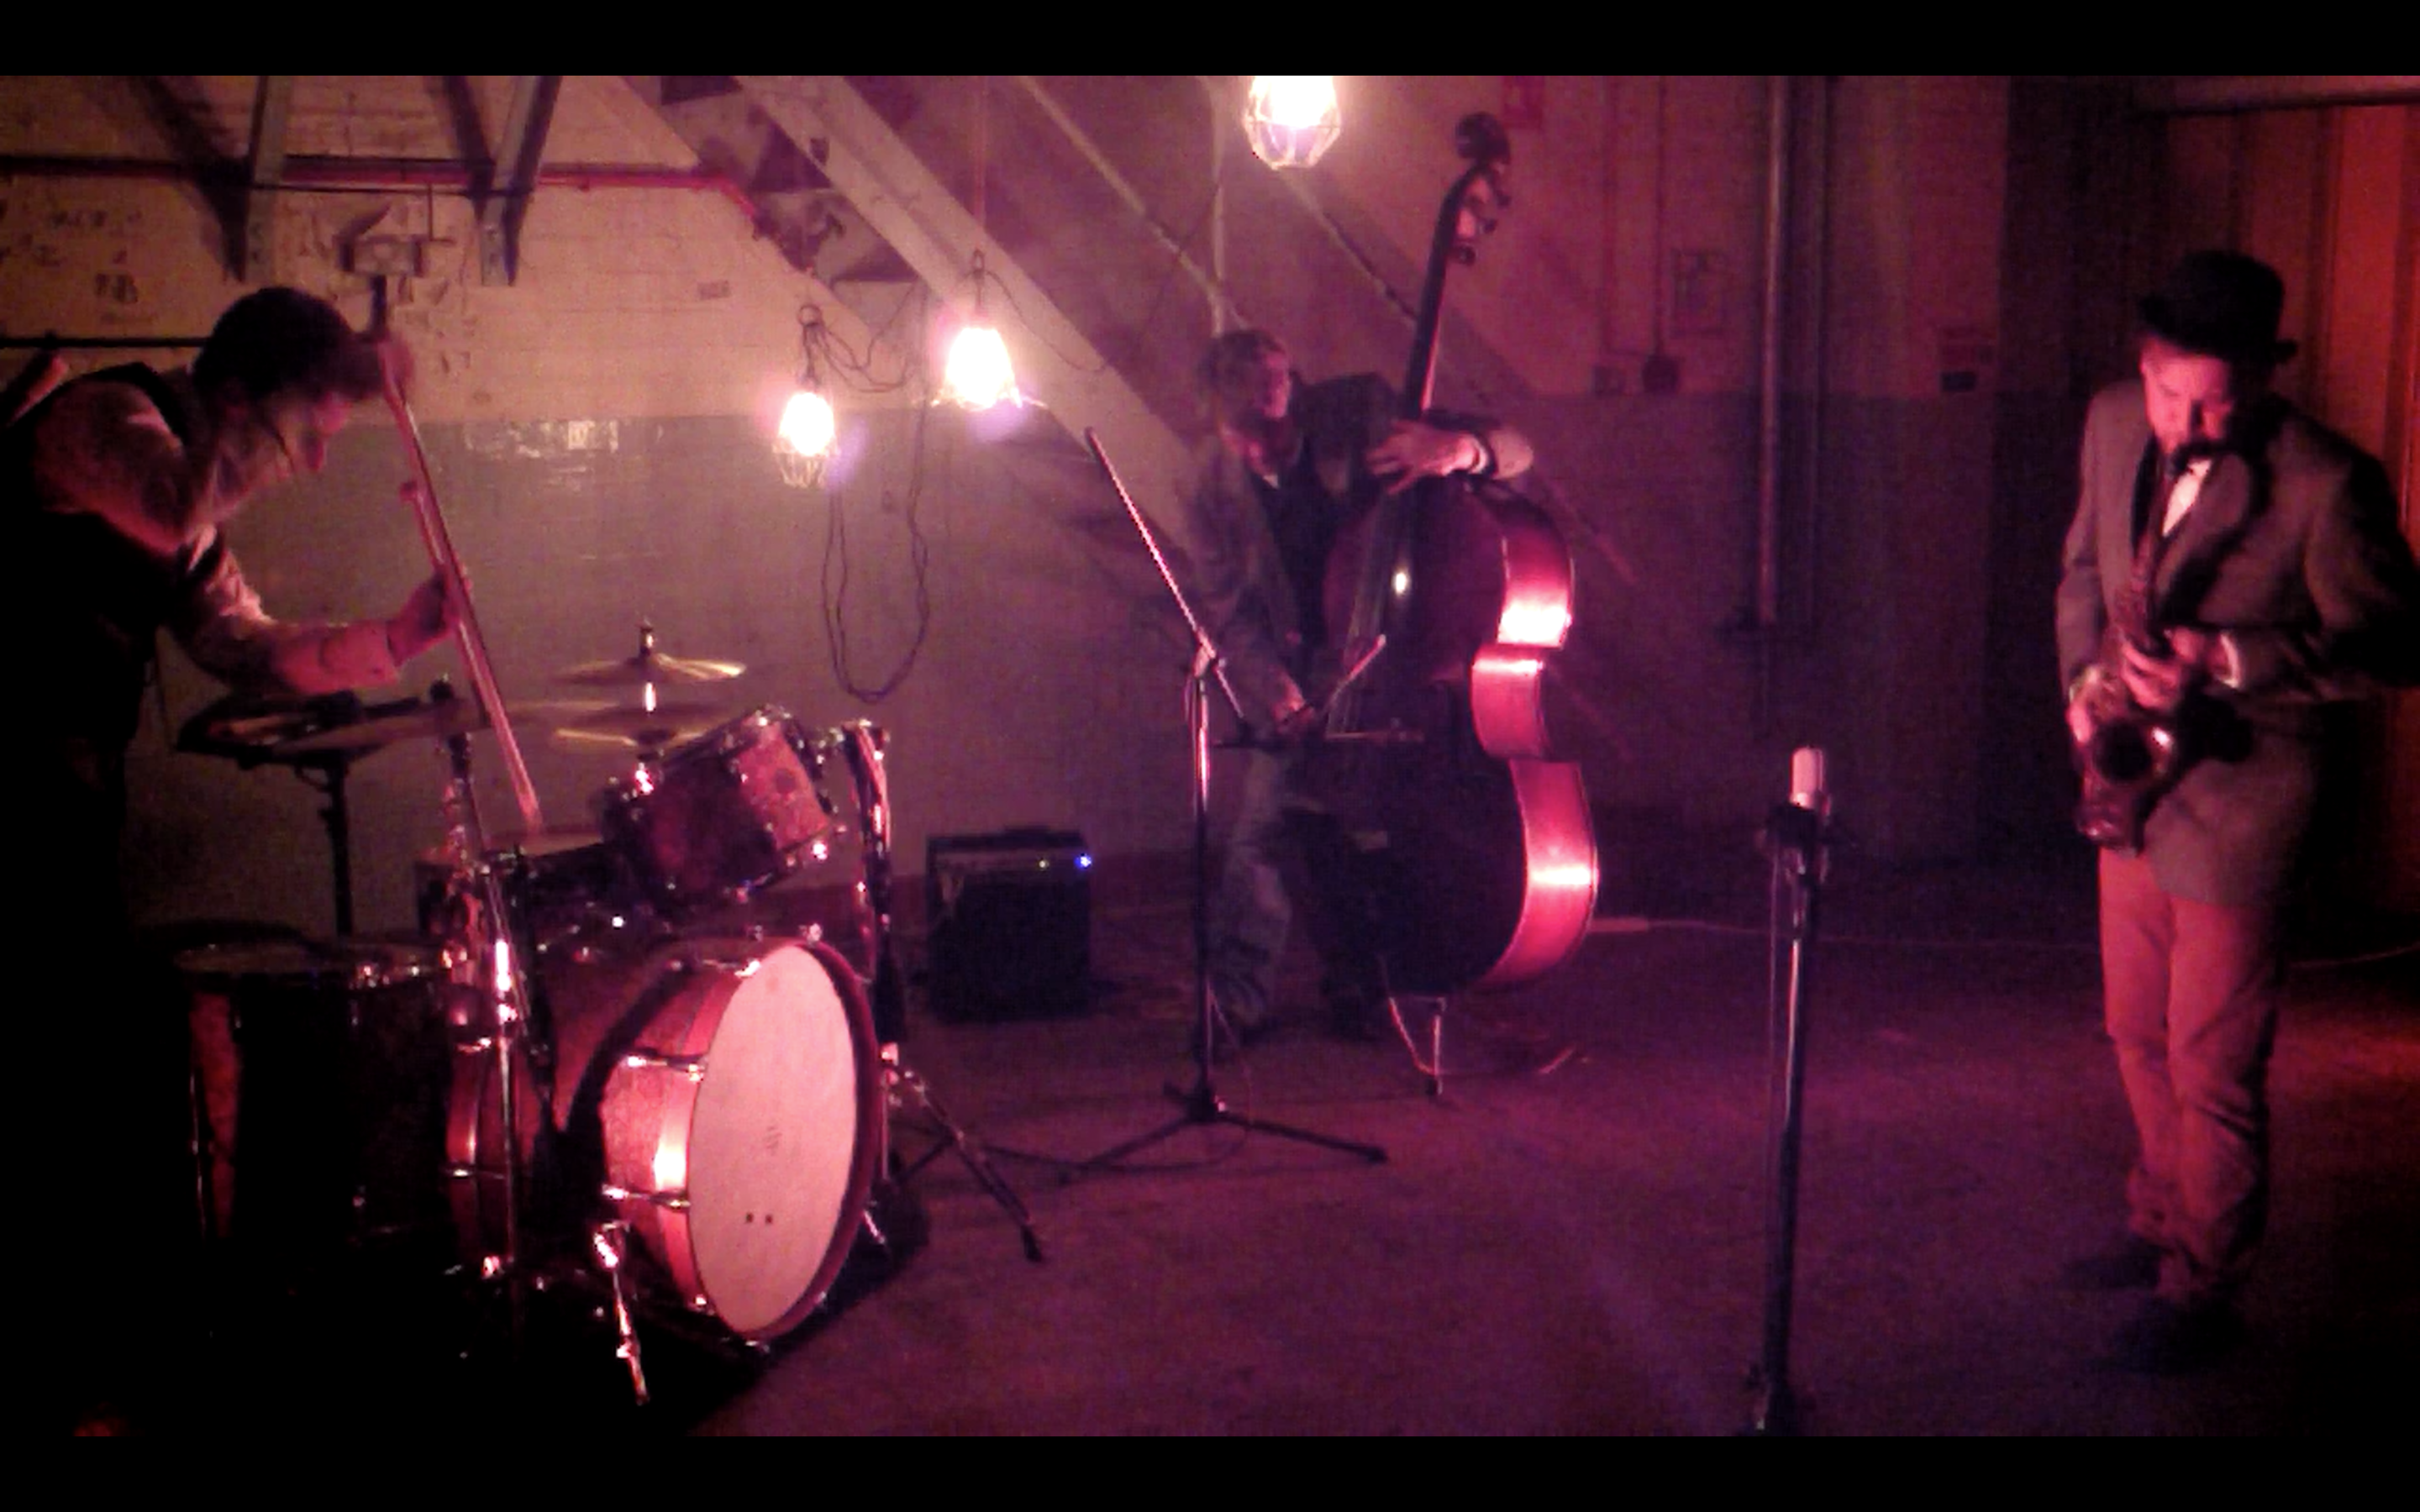 Lee Allatson, Stewart Brackley and Bruce Coates trio, improvising in an industrial workspace in Leicester